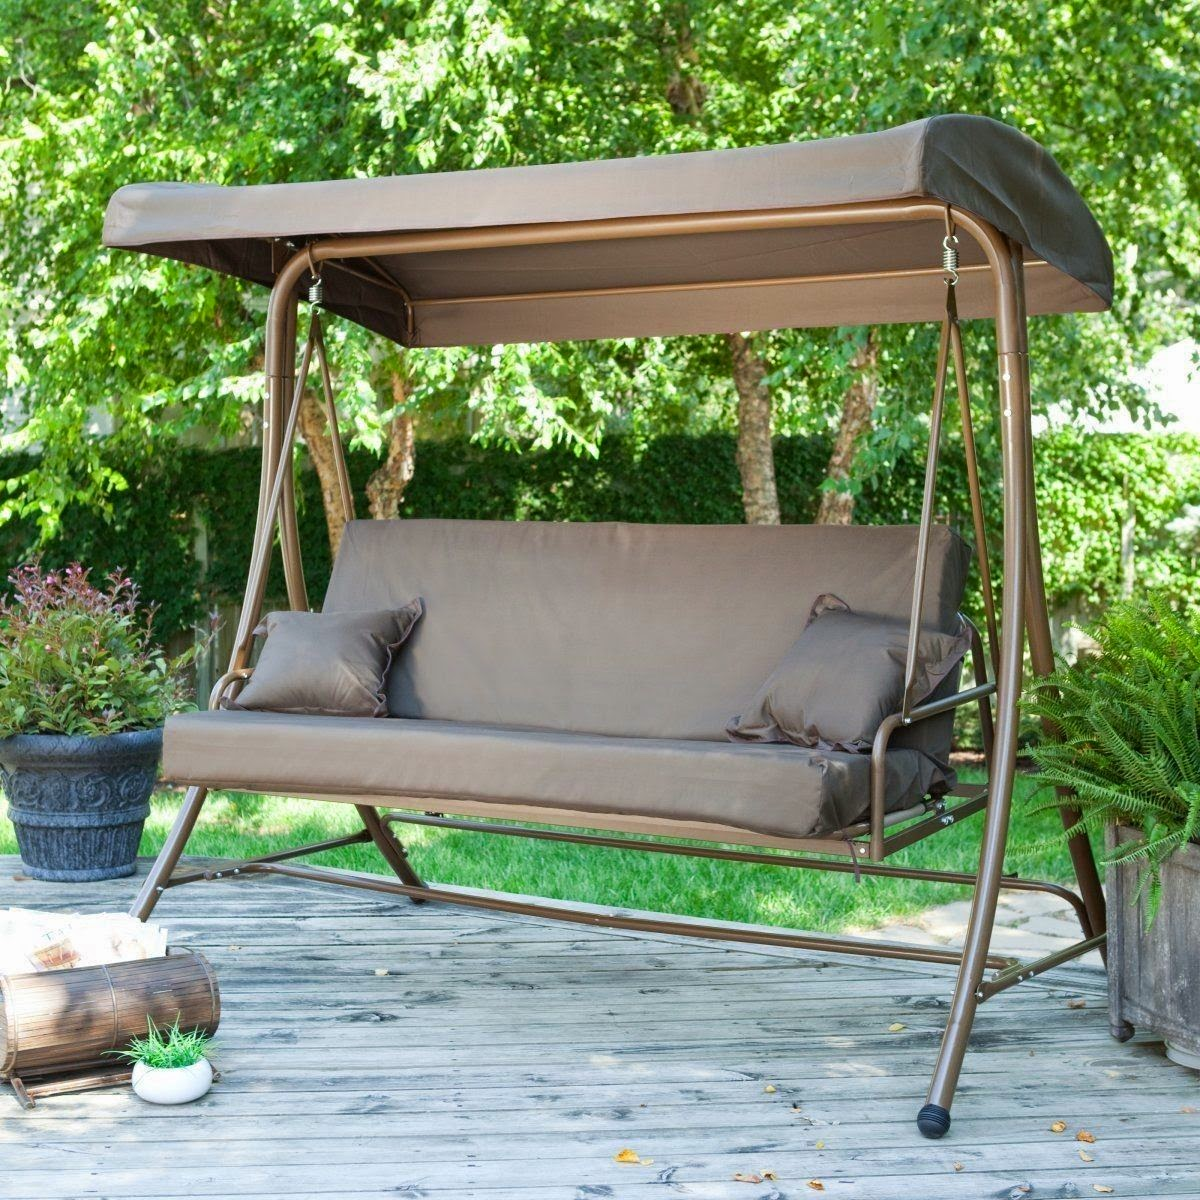 outdoor patio swing - Video Search Engine at Search.com